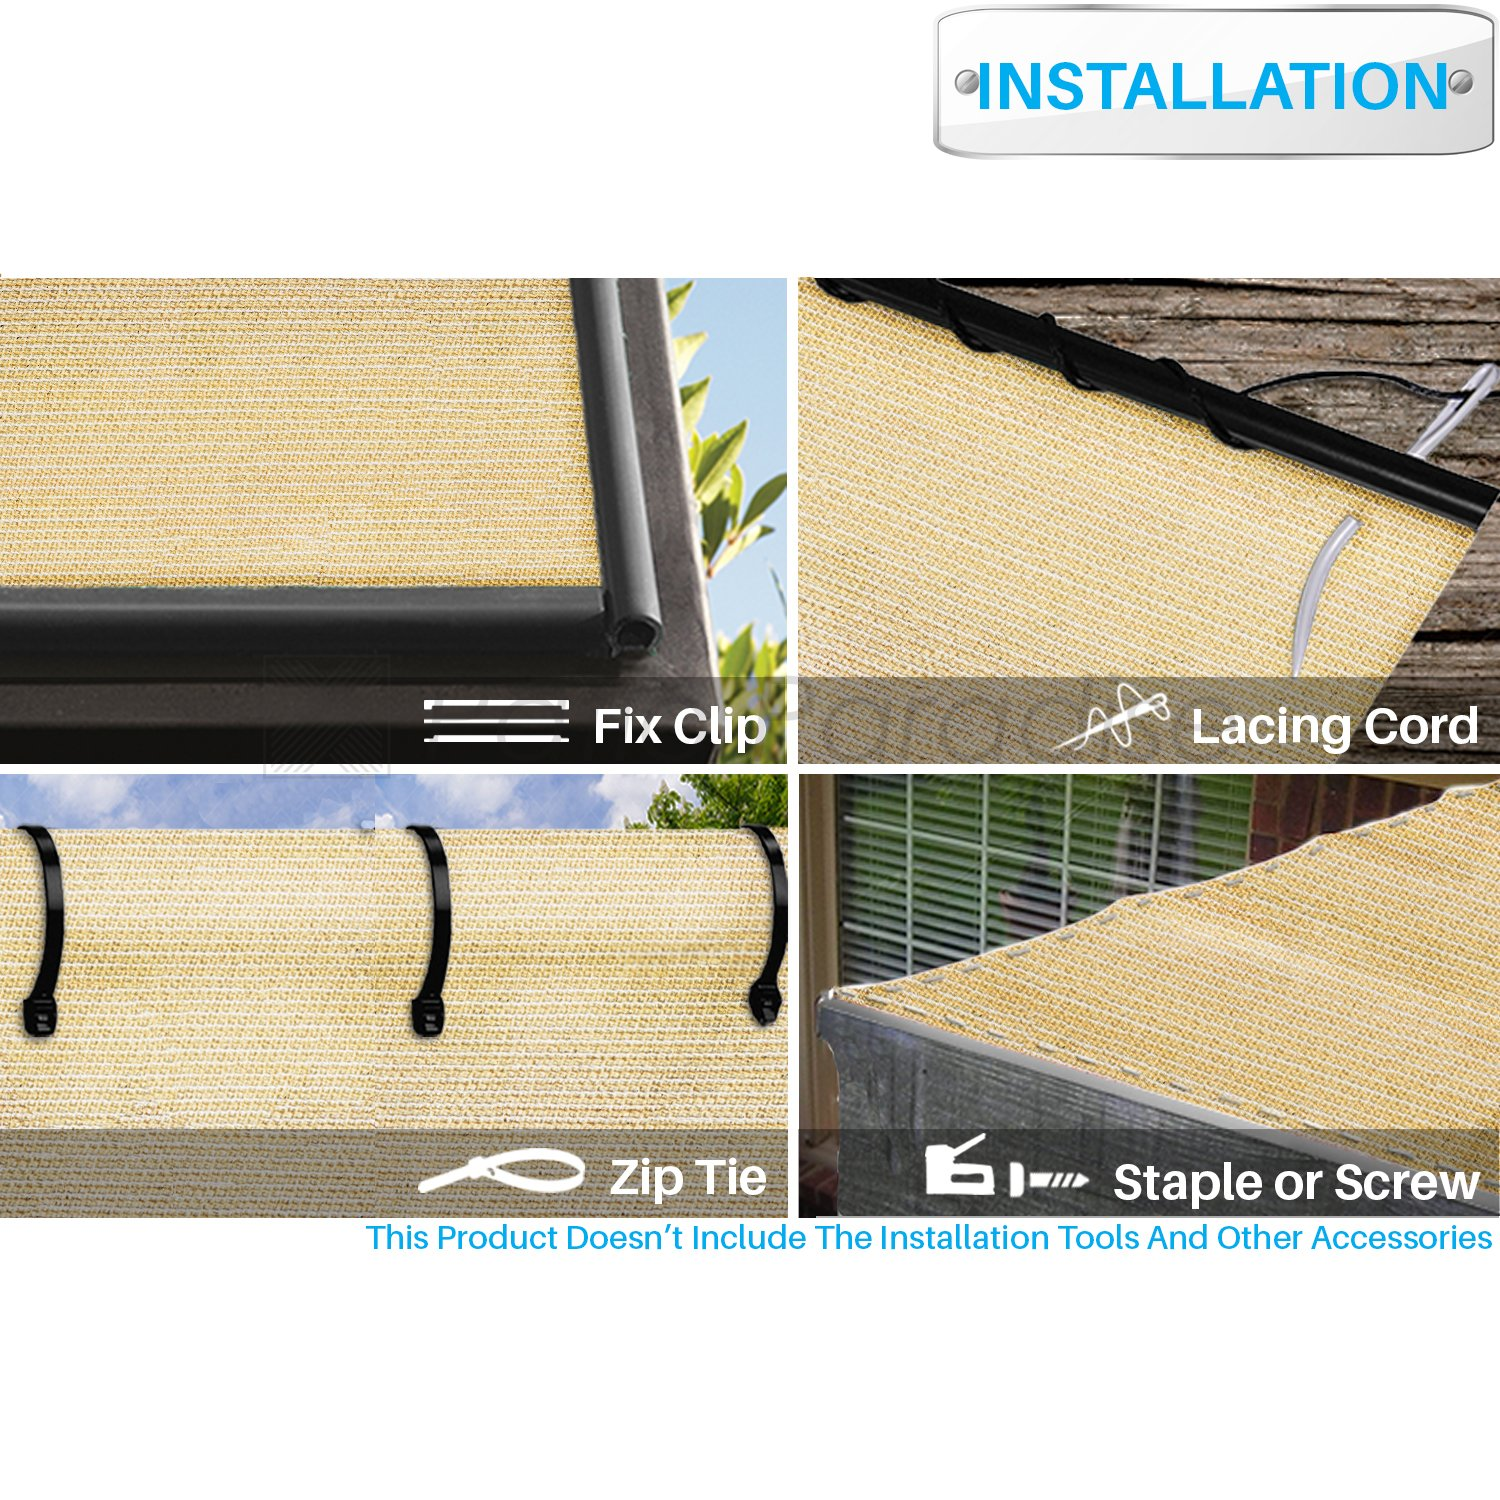 Patio Paradise 16 x 1 Sunblock Shade Cloth Roll,Beige Sun Shade Fabric 95/% UV Resistant Mesh Netting Cover for Outdoor,Backyard,Plant,Greenhouse,Barn